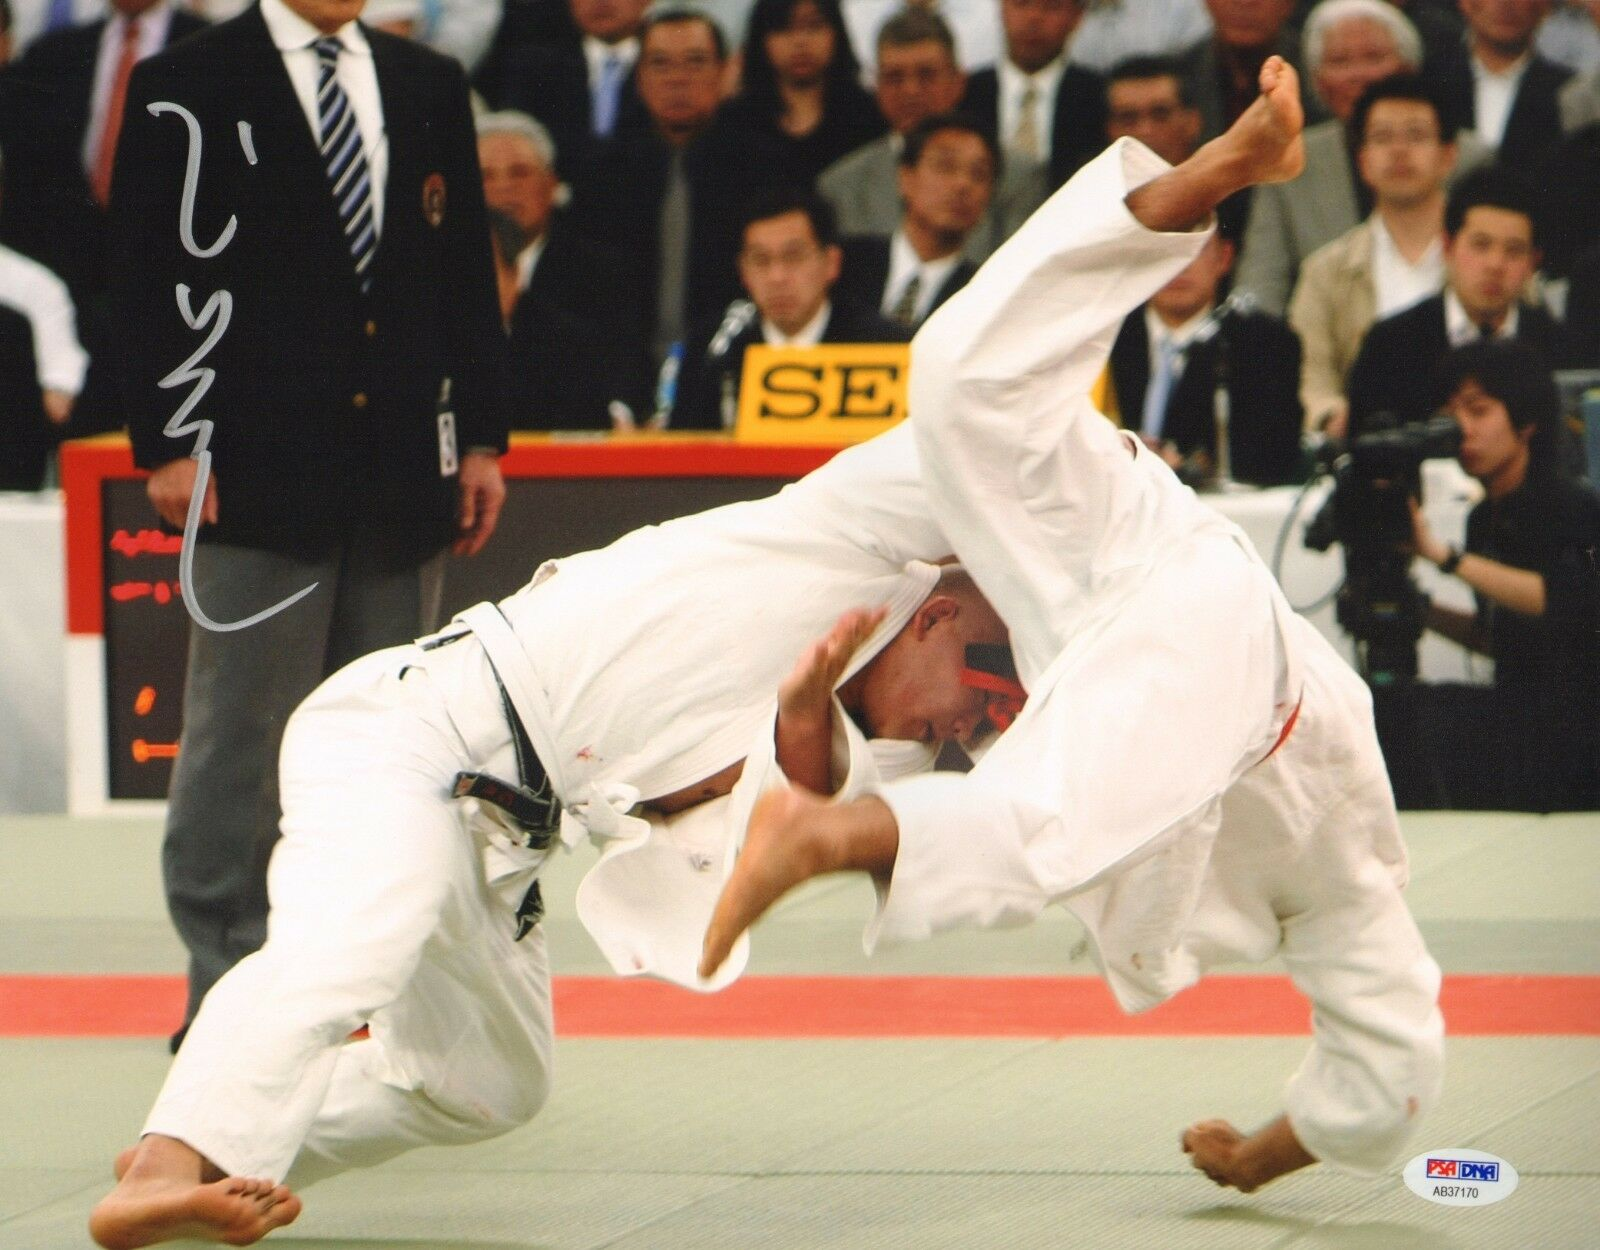 Satoshi Ishii Autographed 11x14 Photo PSA DNA 2008 Olympic or Medal Judo for